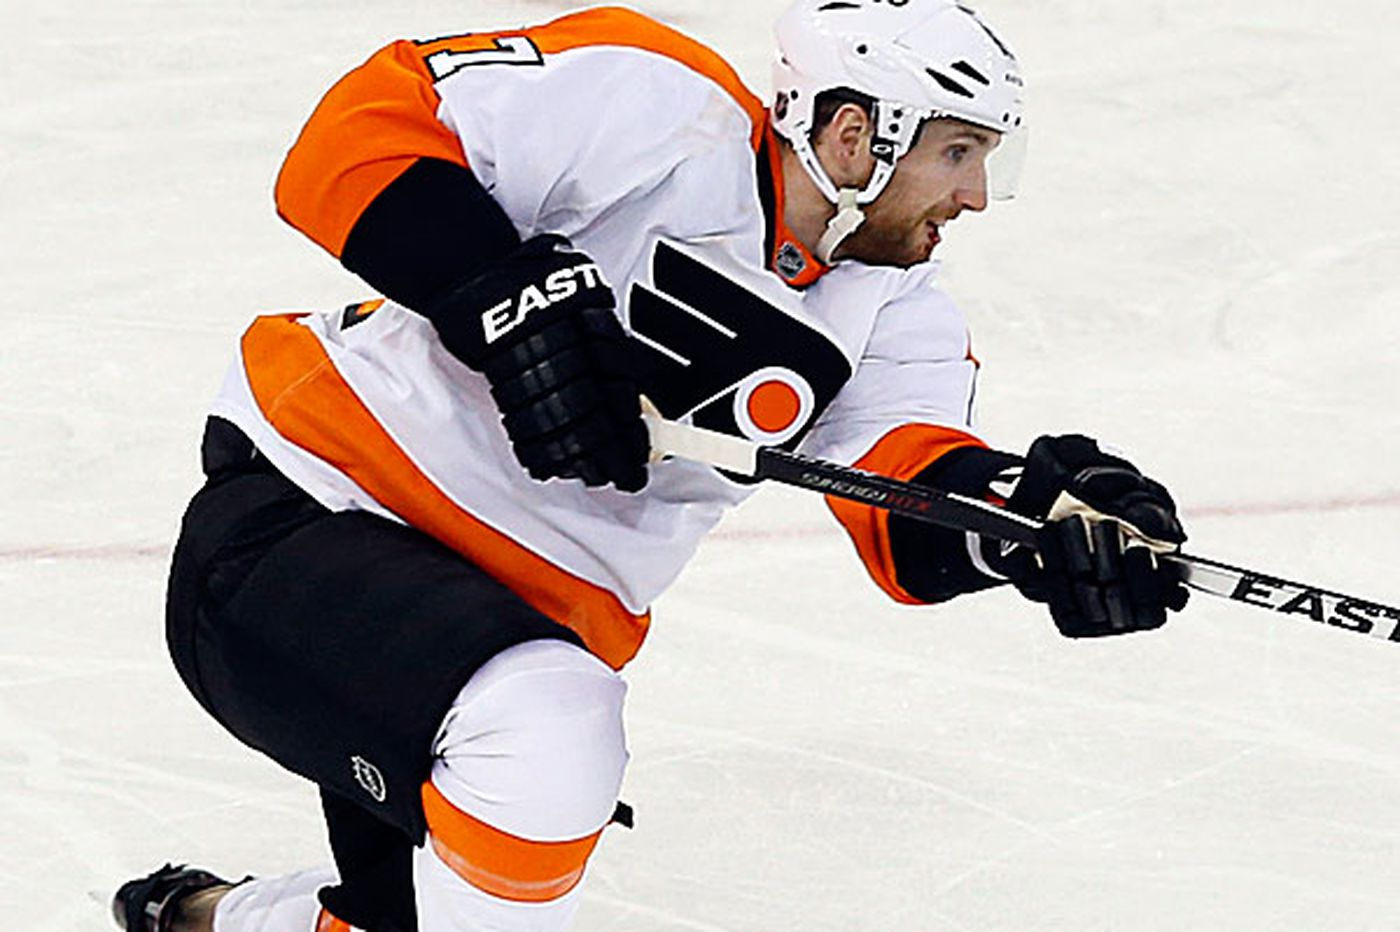 Flyers' defensemen have also been opportunistic on offense